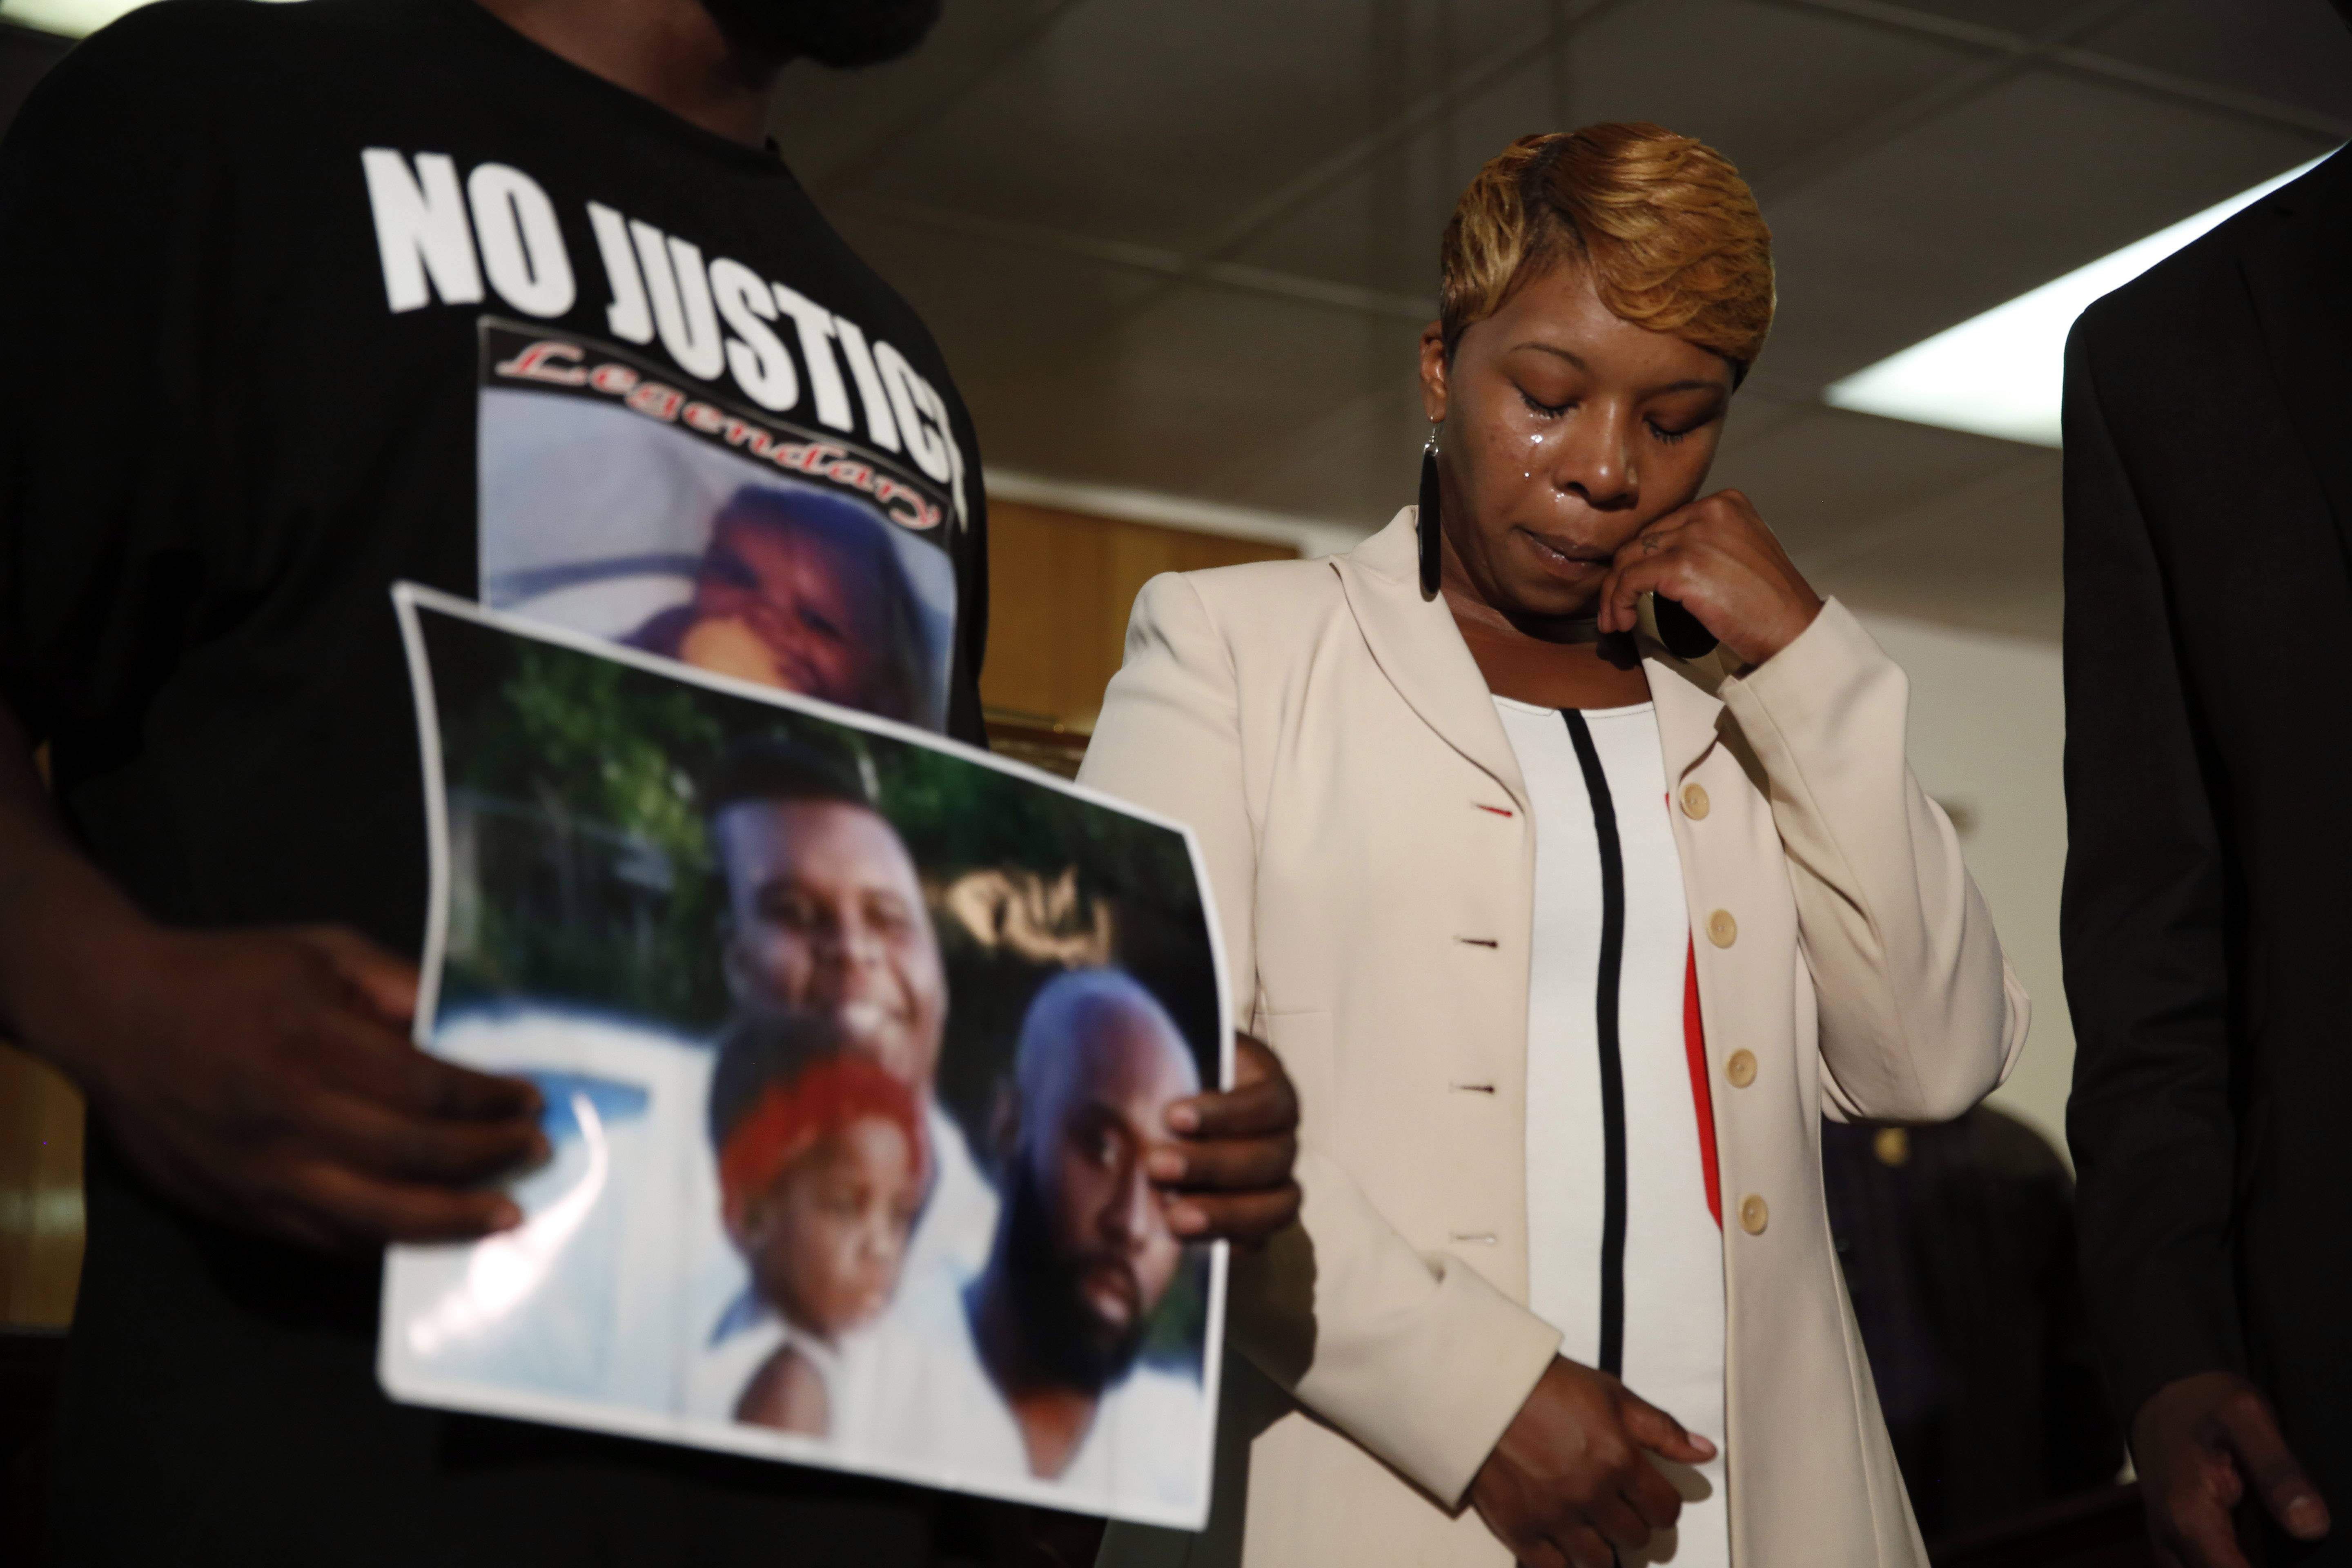 Lingering questions about Michael Brown could be answered Wednesday as two news organizations seek the release of any possible juvenile records for the unarmed 18-year-old who was shot by a police officer last month.